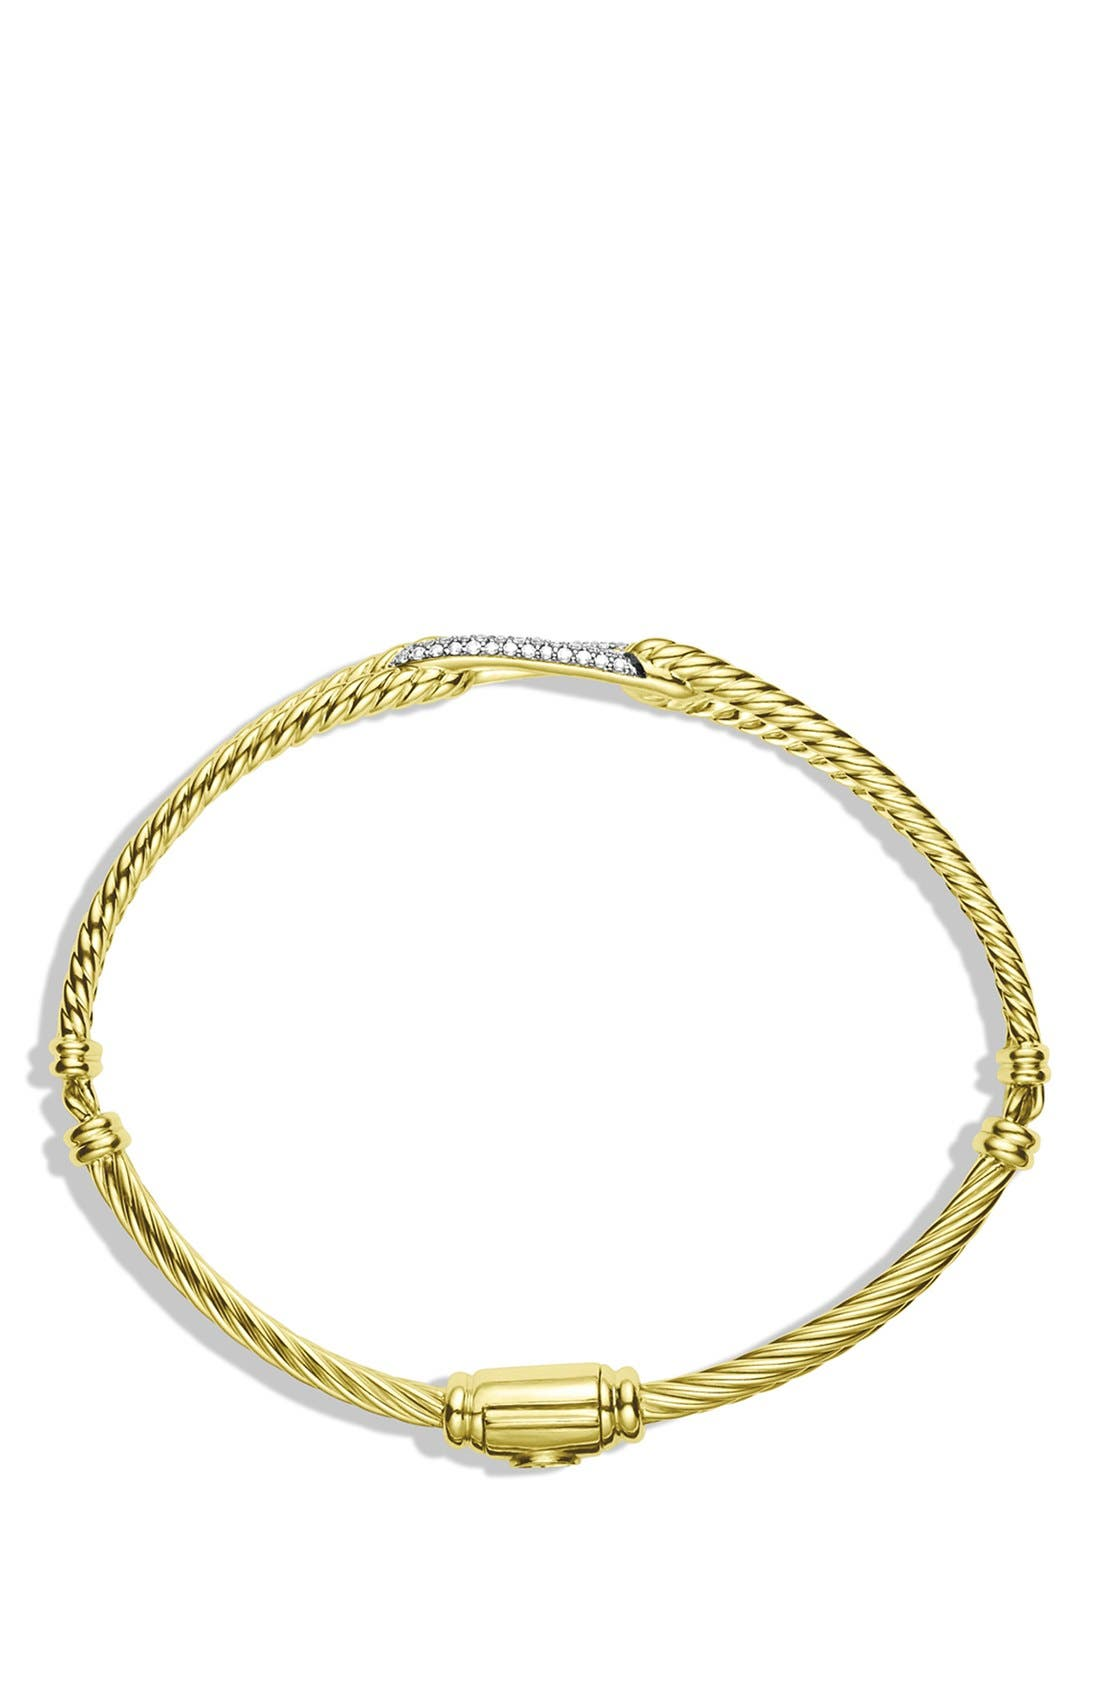 Alternate Image 2  - David Yurman Petite Pavé 'Labyrinth' Mini Single Loop Bracelet with Diamonds in Gold